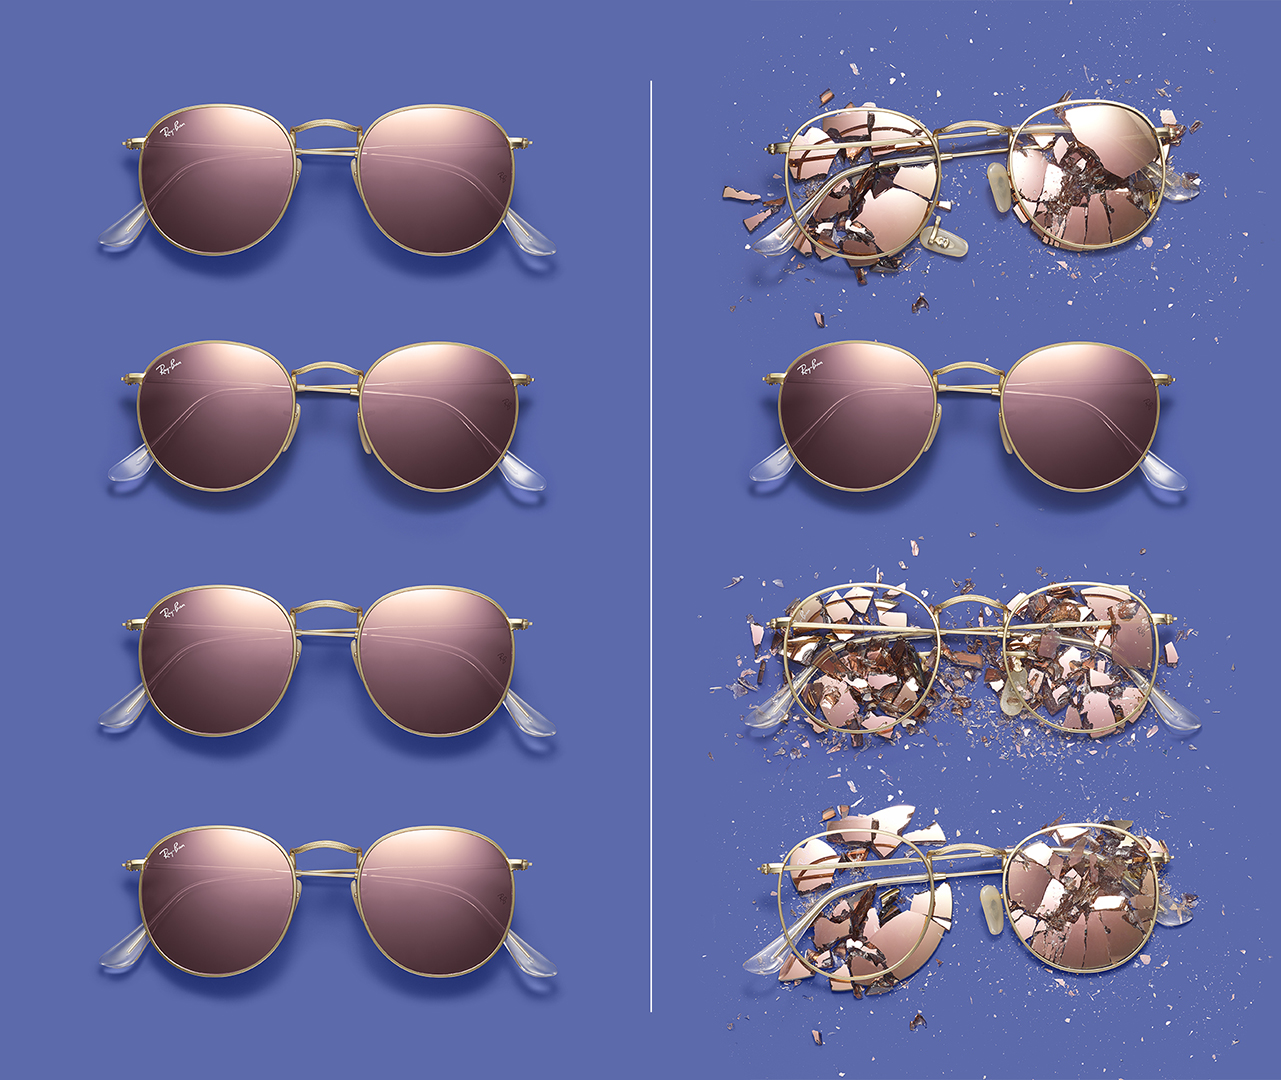 RAYBAN ONE SUNGLASSES. COUNTERFEIT. BEFORE AND AFTER WITH FAKES SMASHED DAVID FILIBERTI